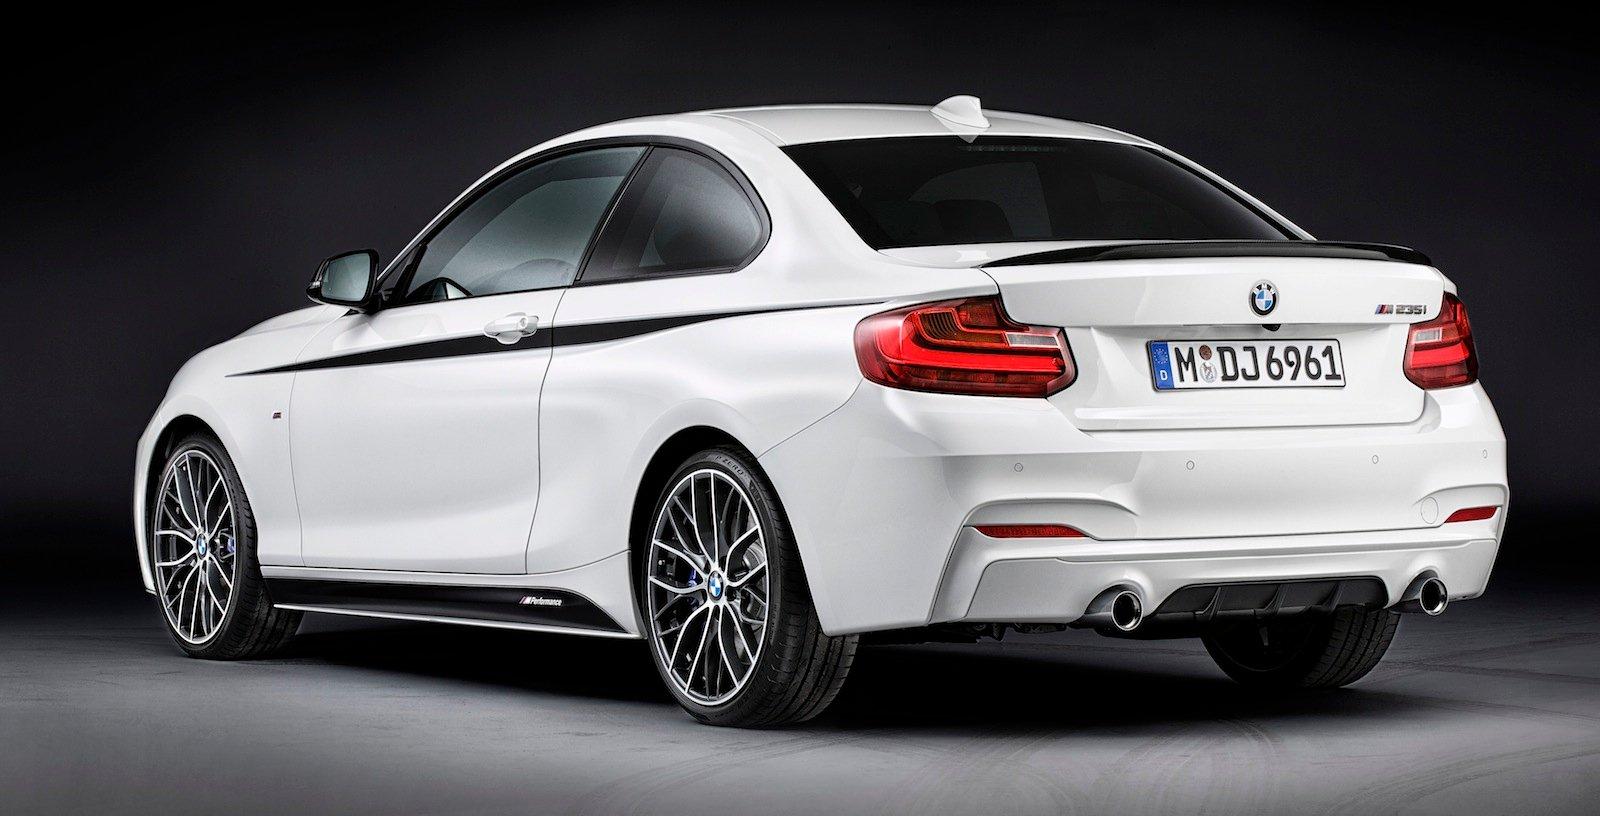 bmw 2 series coupe m performance kits accessories revealed photos 1 of 10. Black Bedroom Furniture Sets. Home Design Ideas